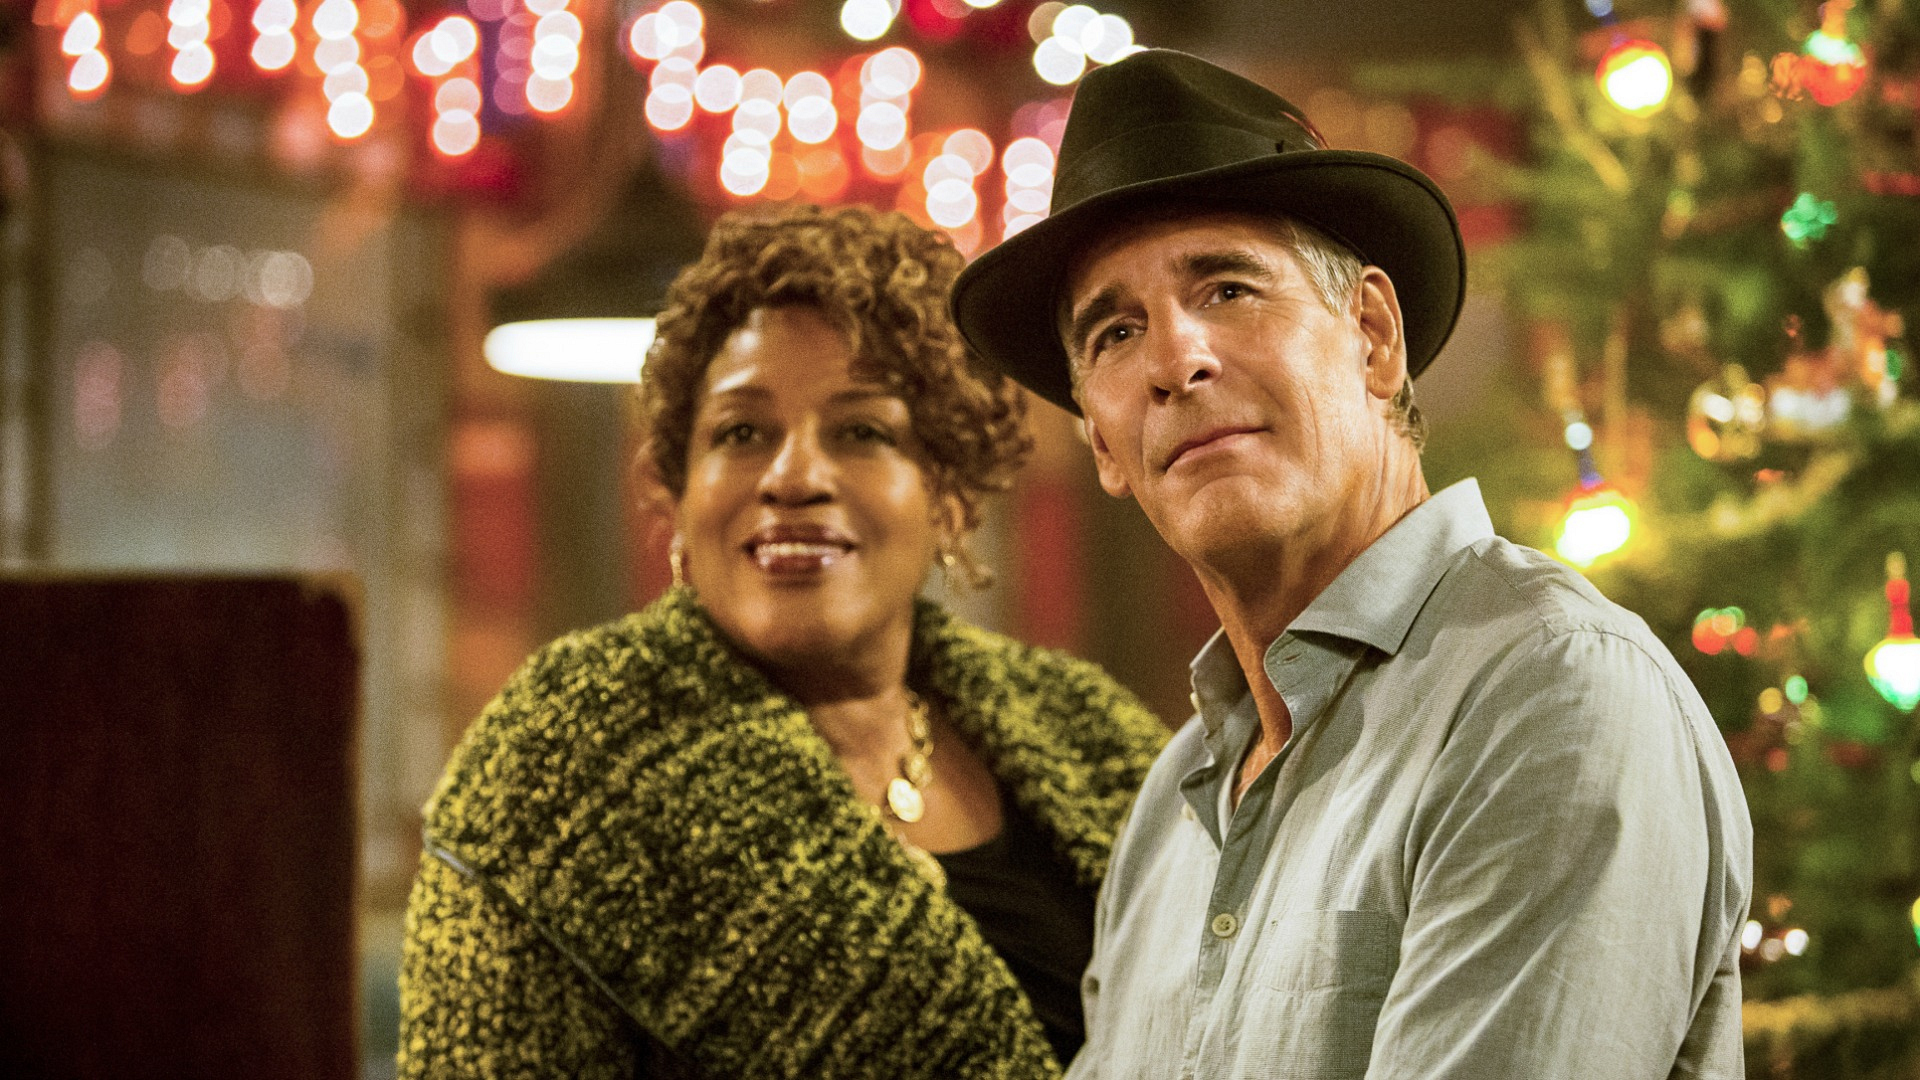 It's Dr. Loretta Wade and Cassius Pride from NCIS: New Orleans!